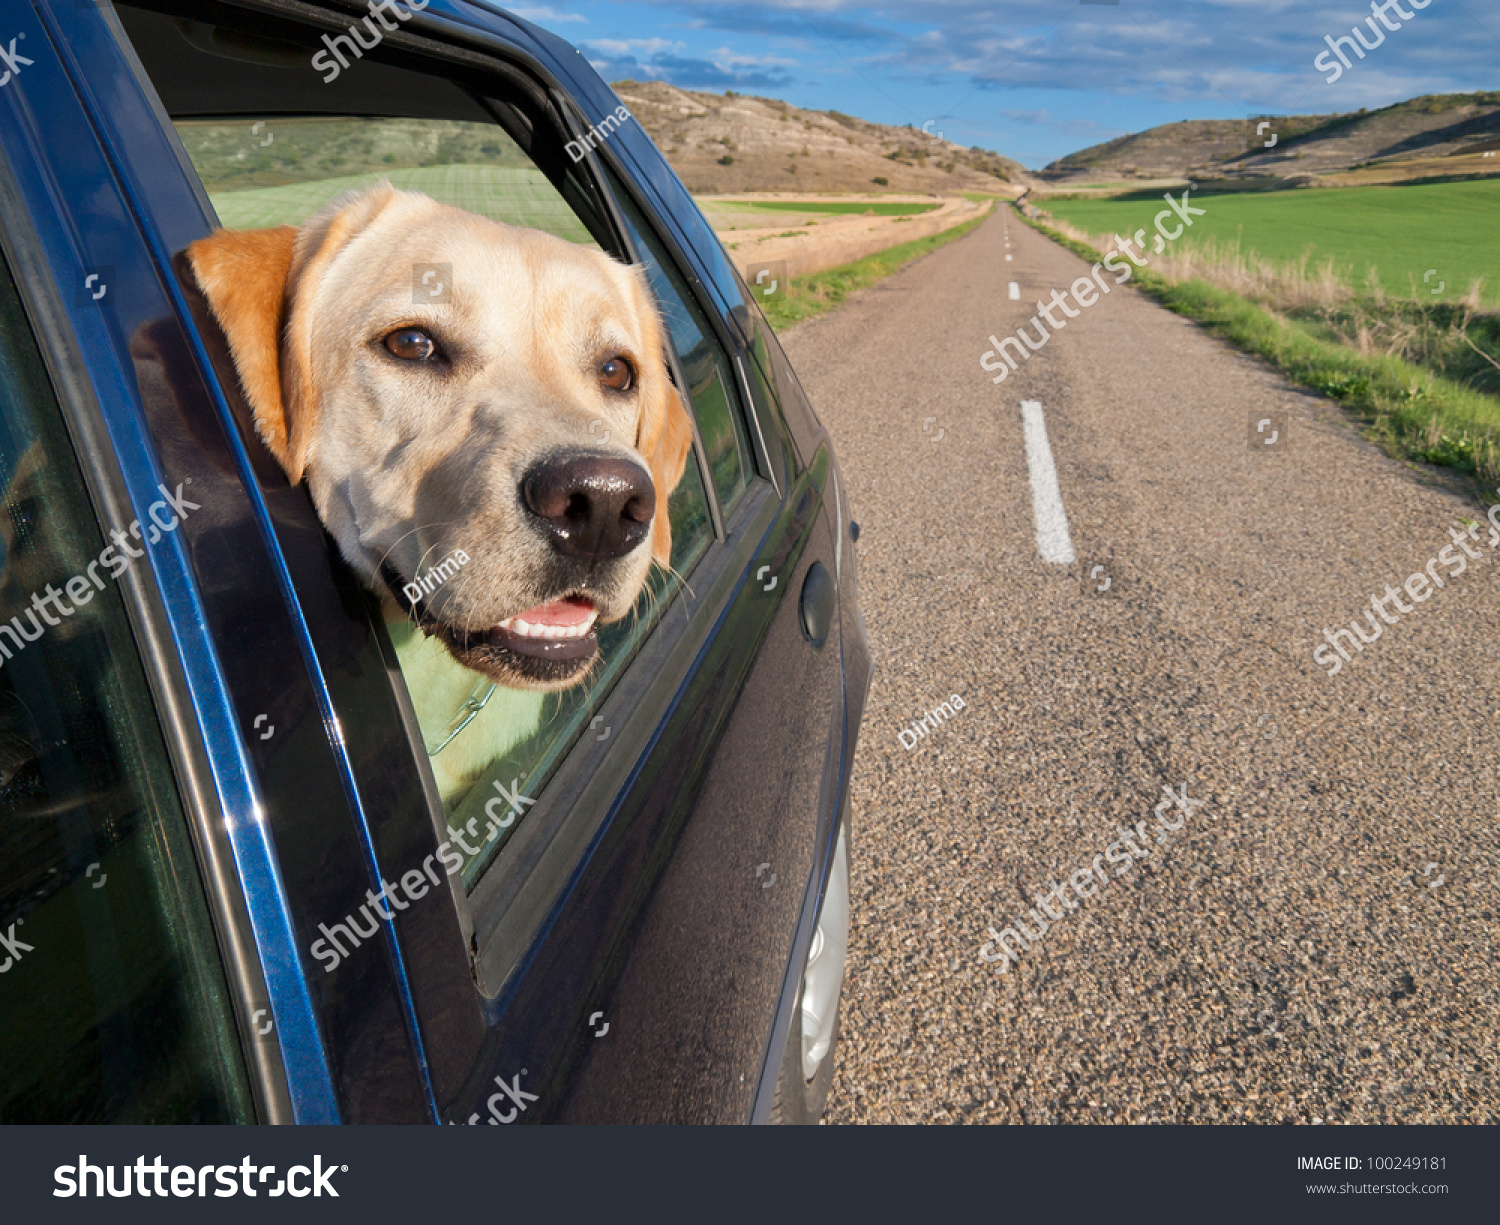 Dog car window travel concept pet stock photo 100249181 shutterstock - Dogs for small spaces concept ...